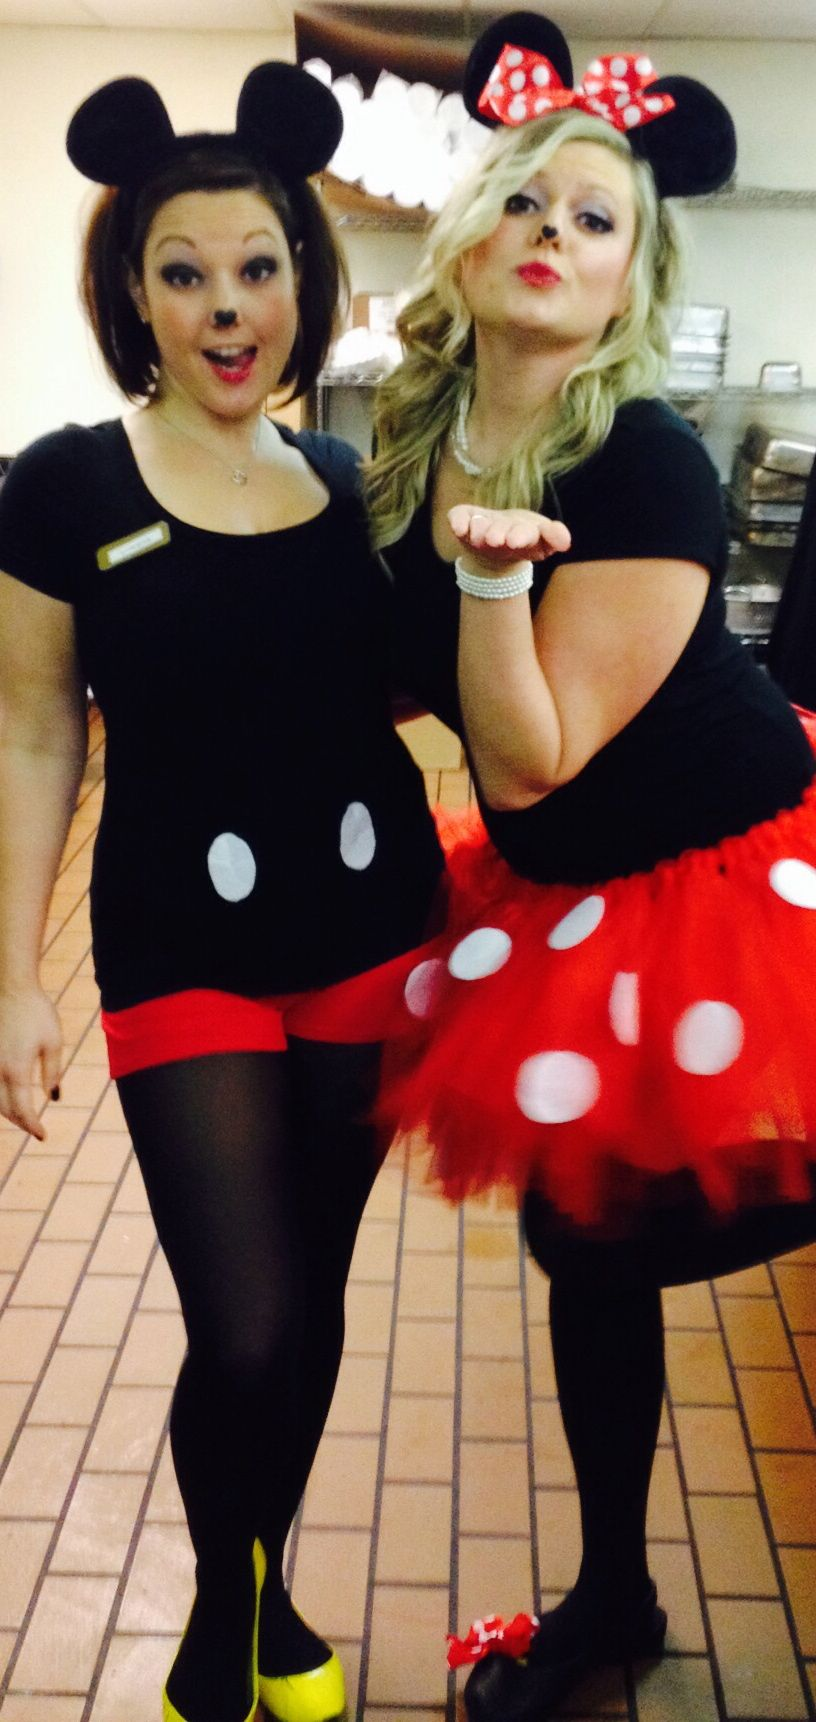 DIY Mickey and Minnie Mouse Costumes.  sc 1 st  Pinterest & DIY Mickey and Minnie Mouse Costumes. | costume u0026 cosplay ...